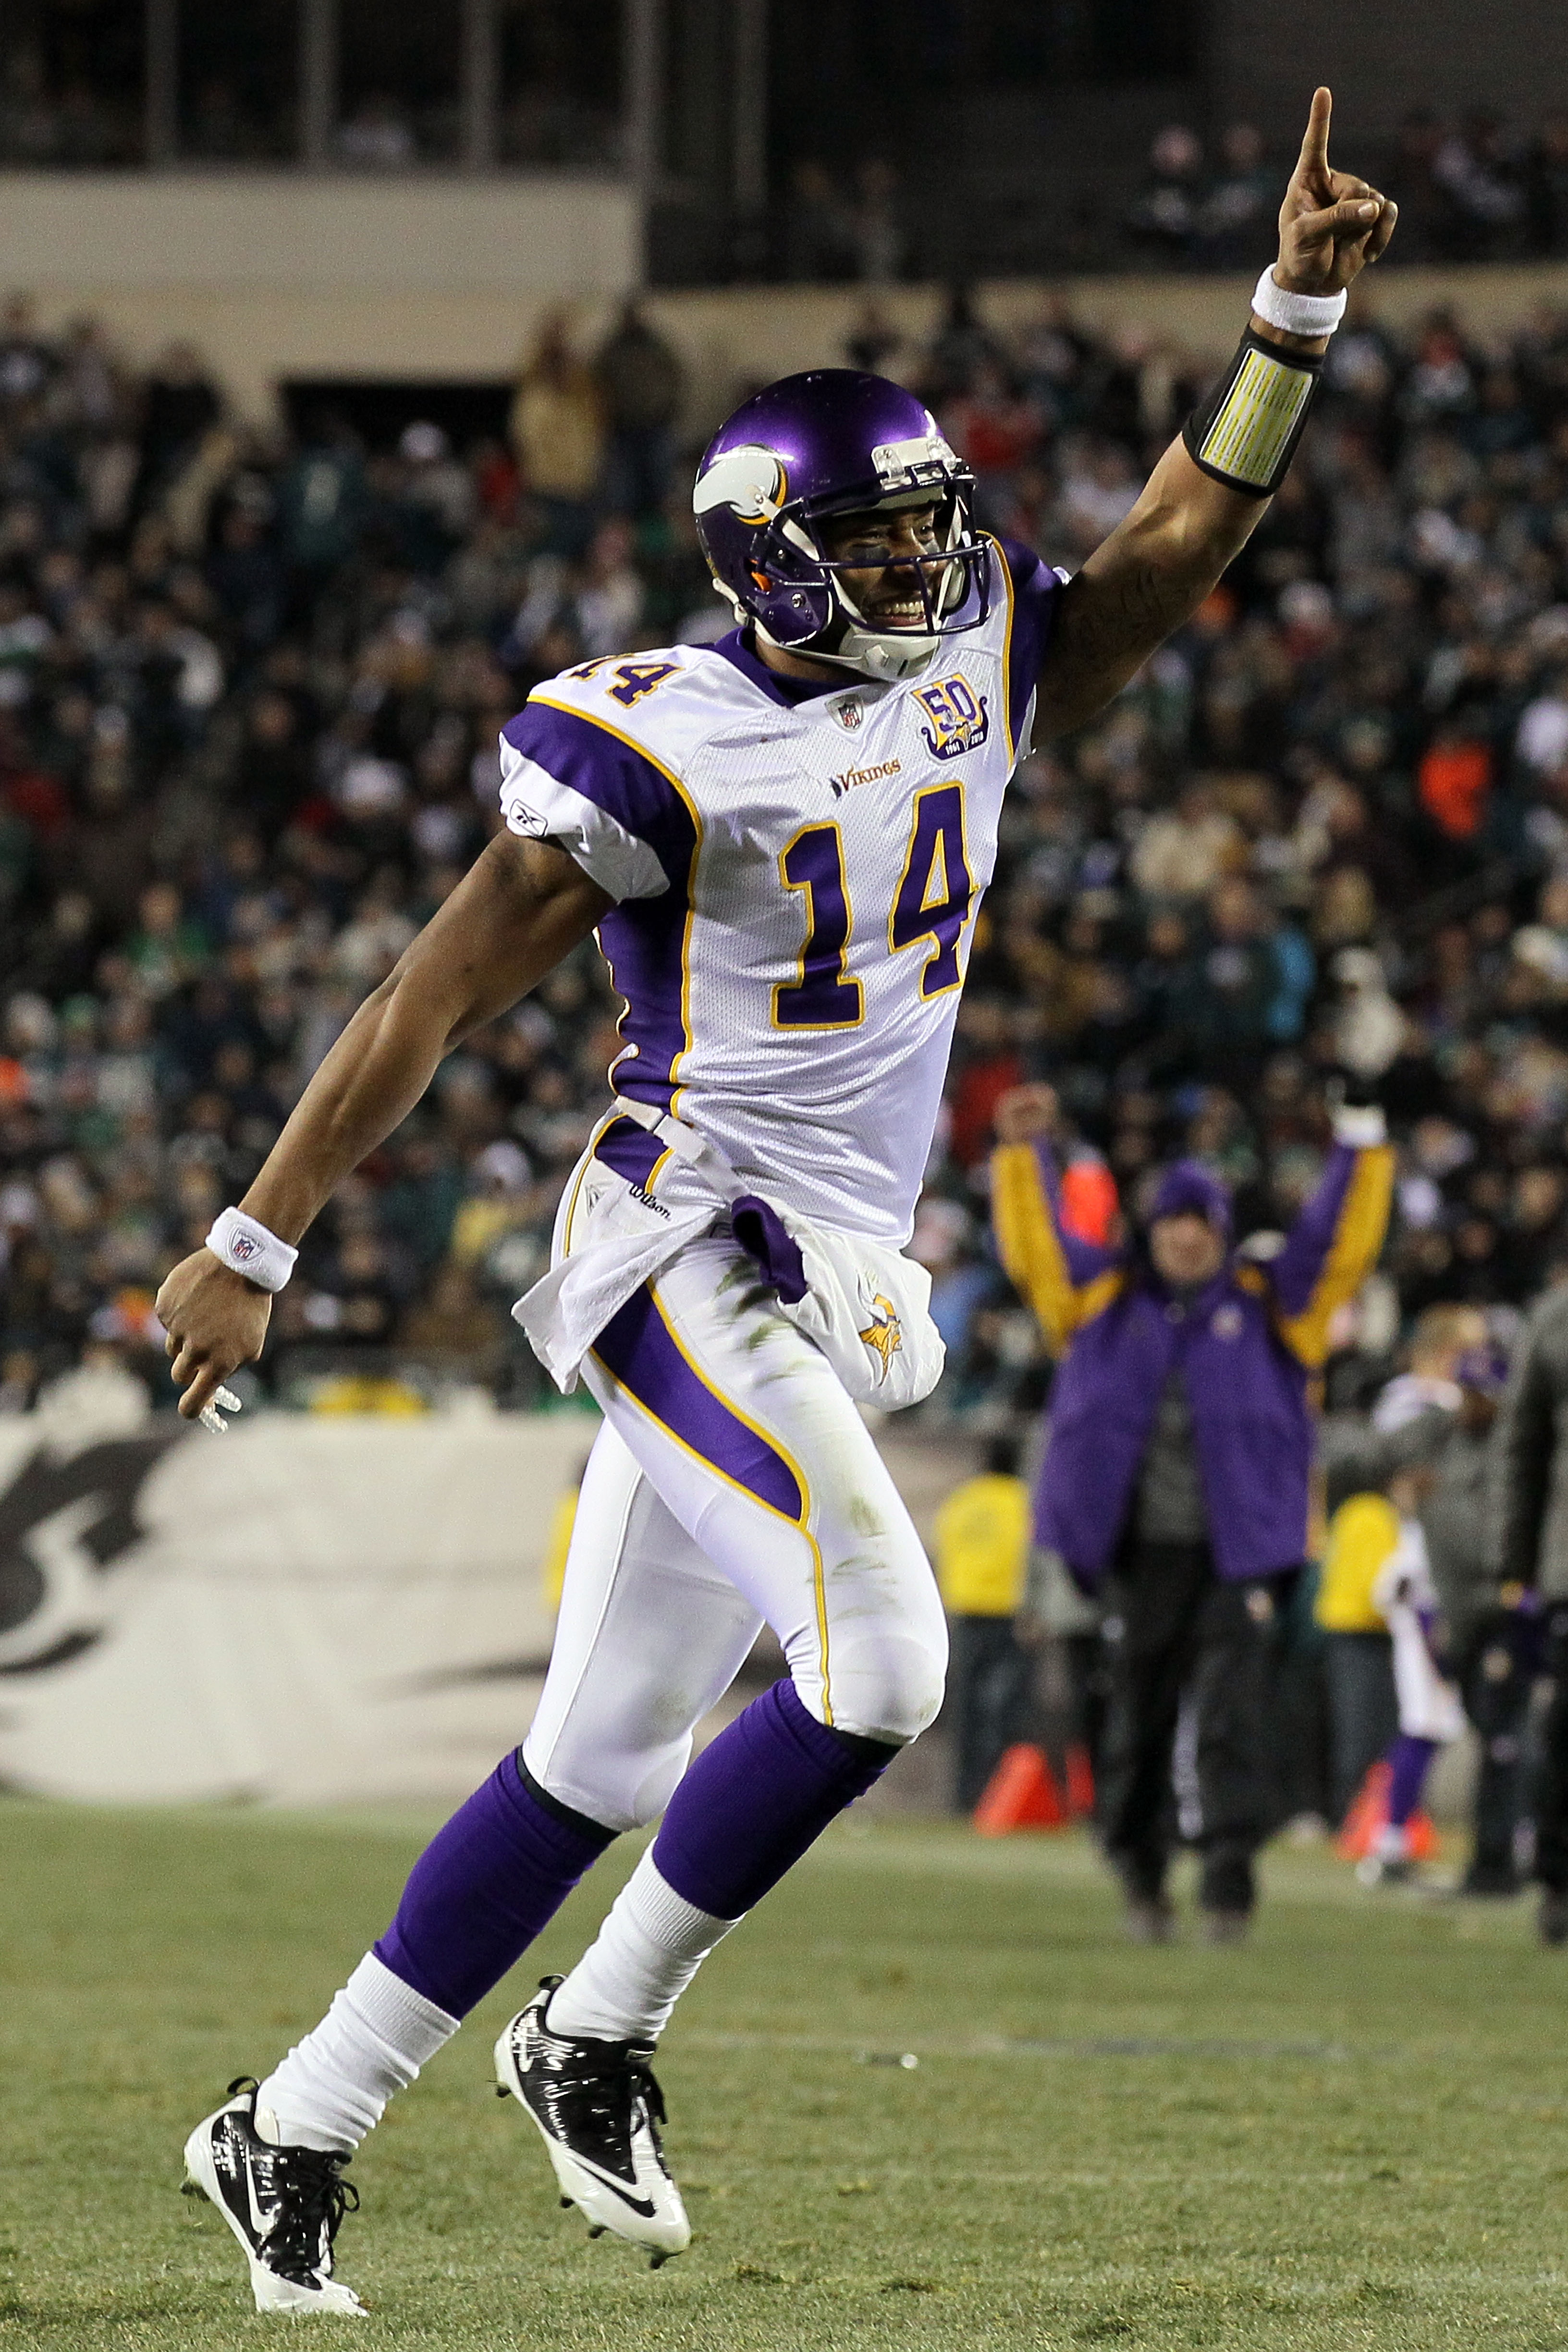 PHILADELPHIA, PA - DECEMBER 26:  Joe Webb #14 of the Minnesota Vikings celebrates after play against the Philadelphia Eagles at Lincoln Financial Field on December 26, 2010 in Philadelphia, Pennsylvania.  (Photo by Jim McIsaac/Getty Images)